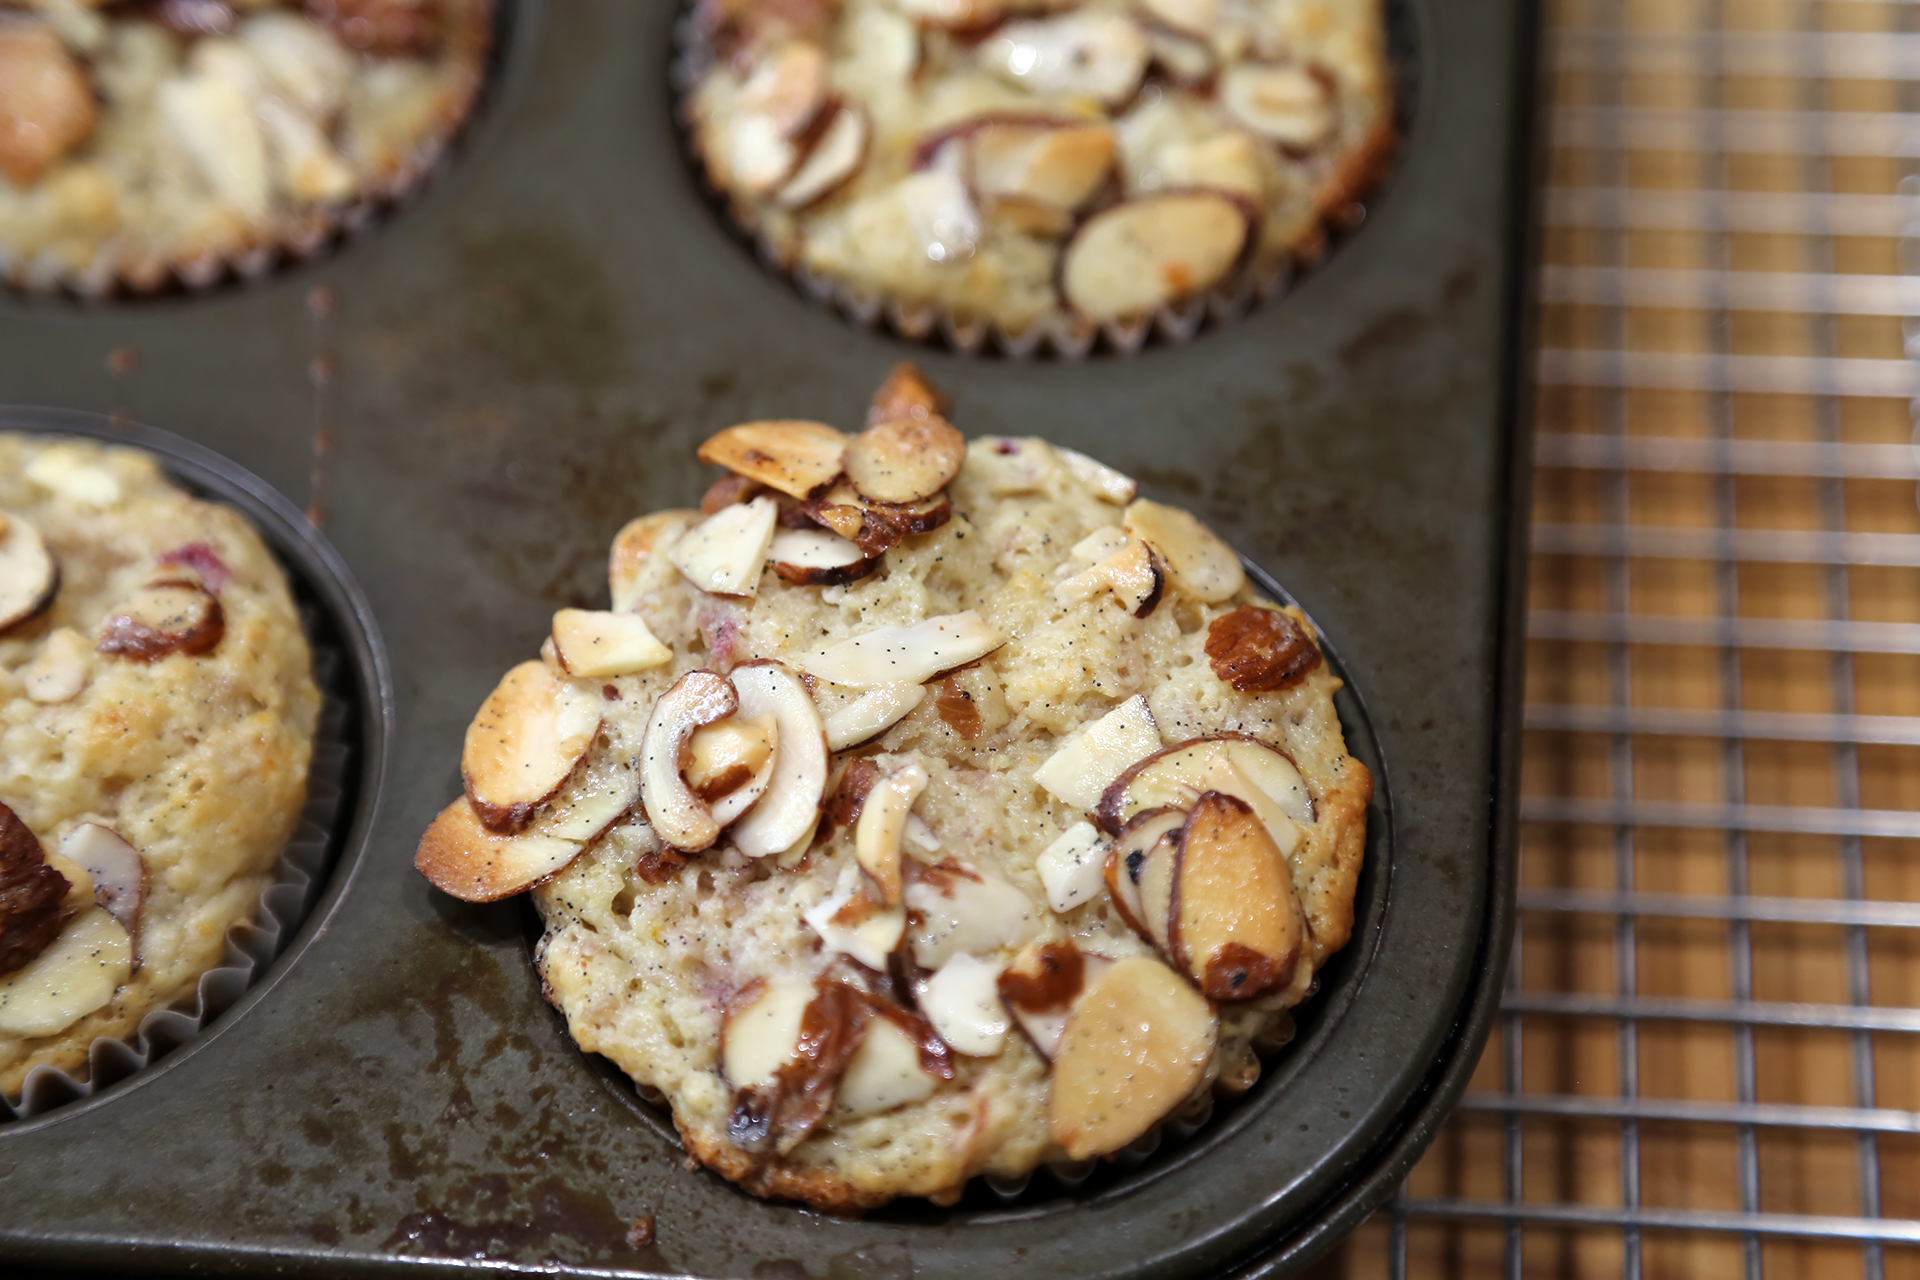 Roasted Rhubarb-Orange Muffins with Vanilla-Almond Crackle